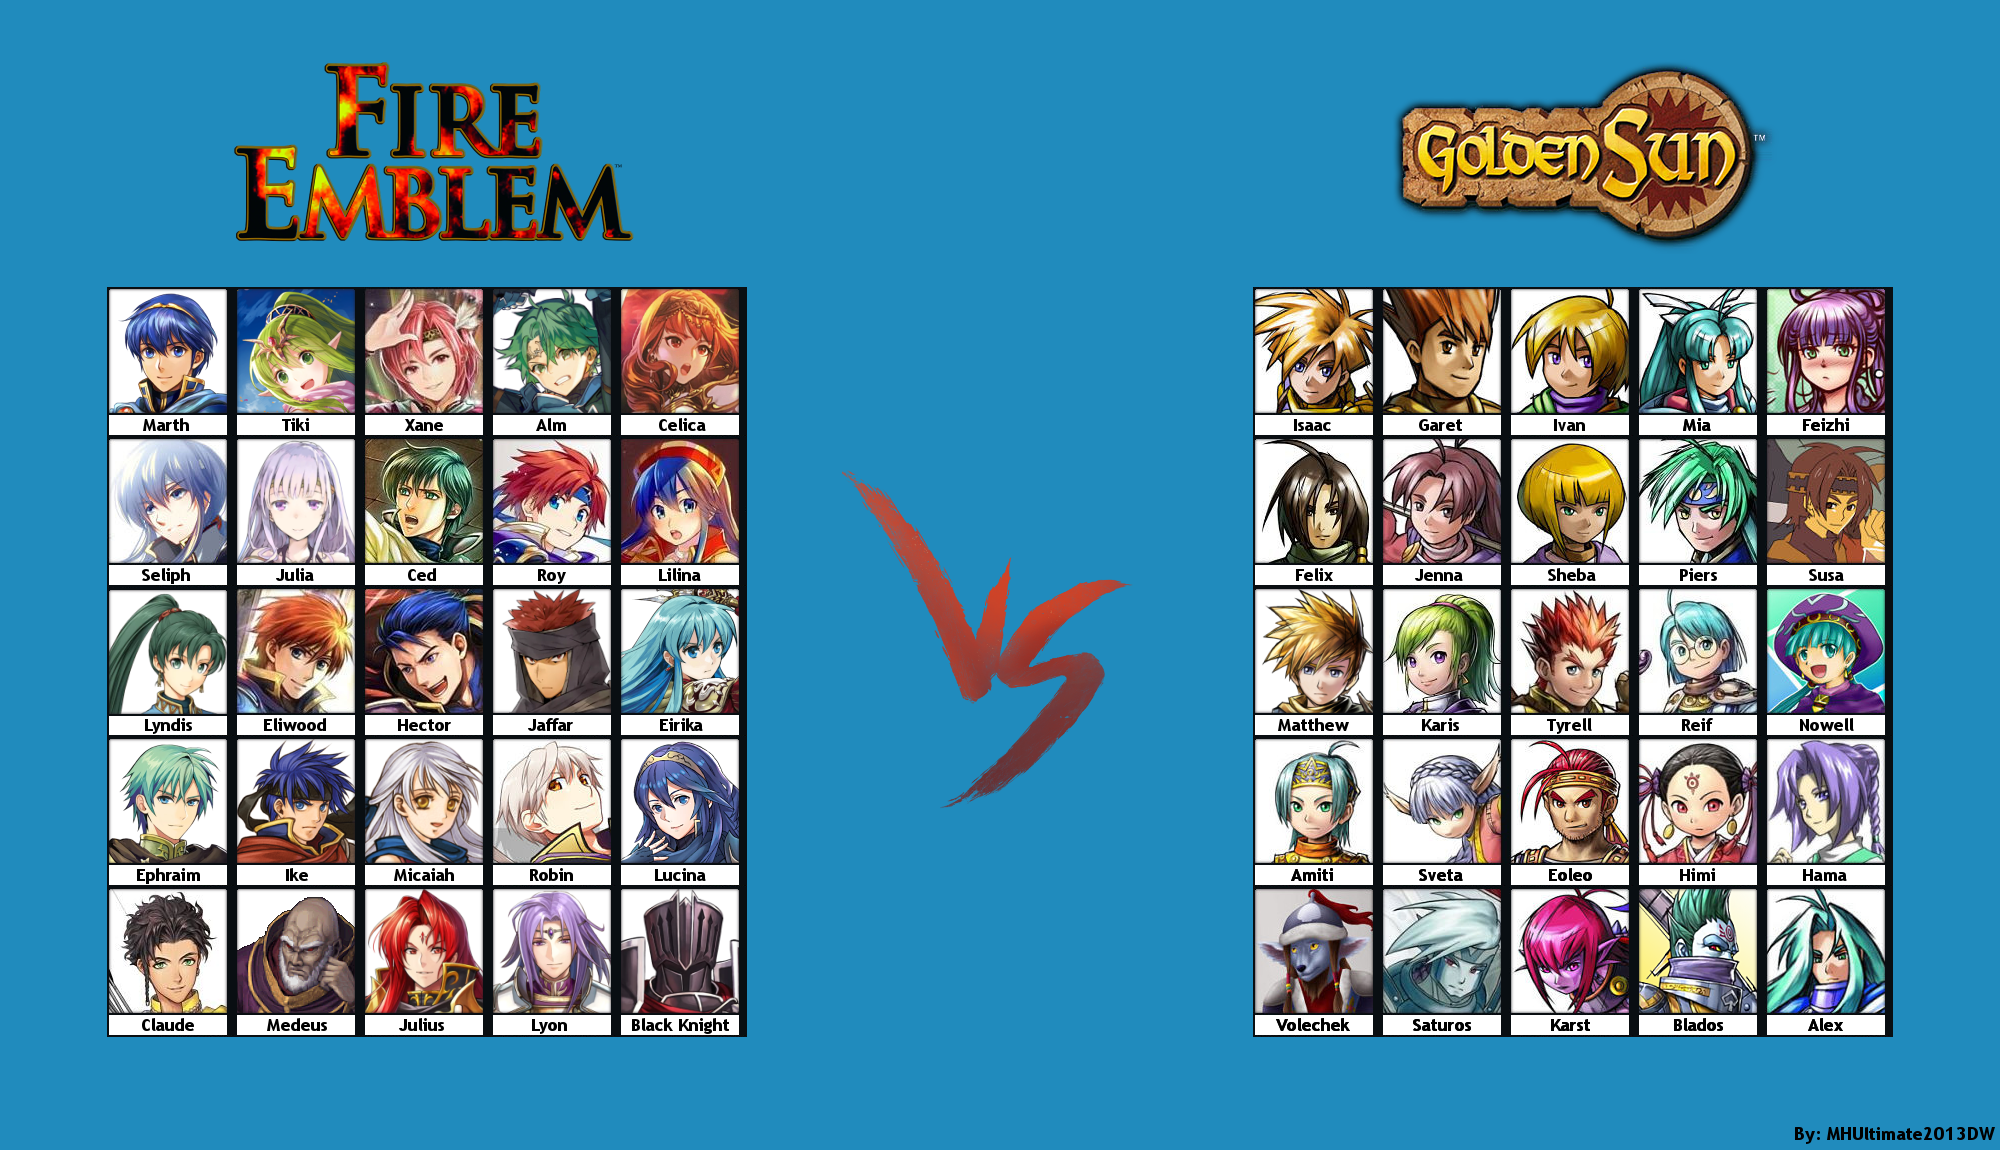 Fire Emblem X Golden Sun Fighting Game Roster By Mhultimate2013dw On Deviantart